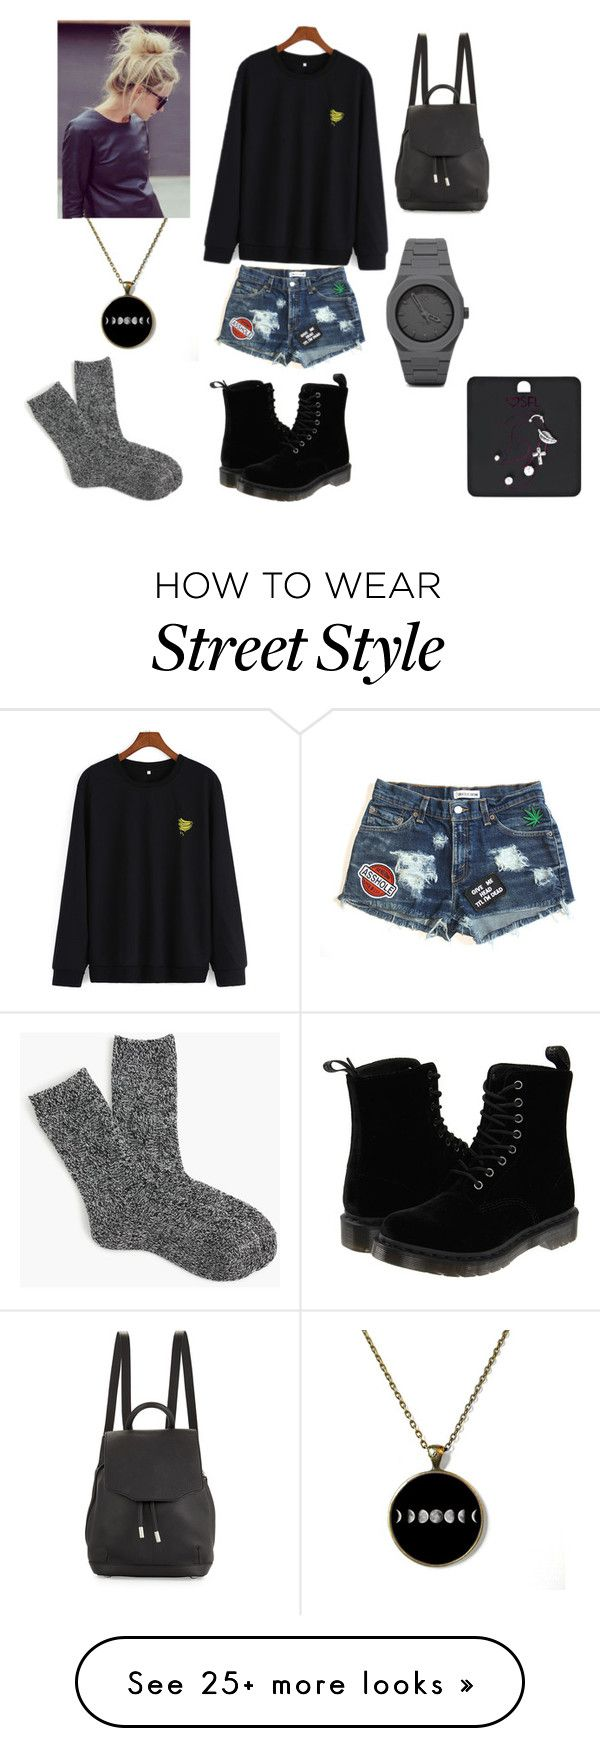 """""""Street style"""" by alexandra-ac on Polyvore featuring Dr. Martens, rag & bone, CC, J.Crew, sport and Street"""